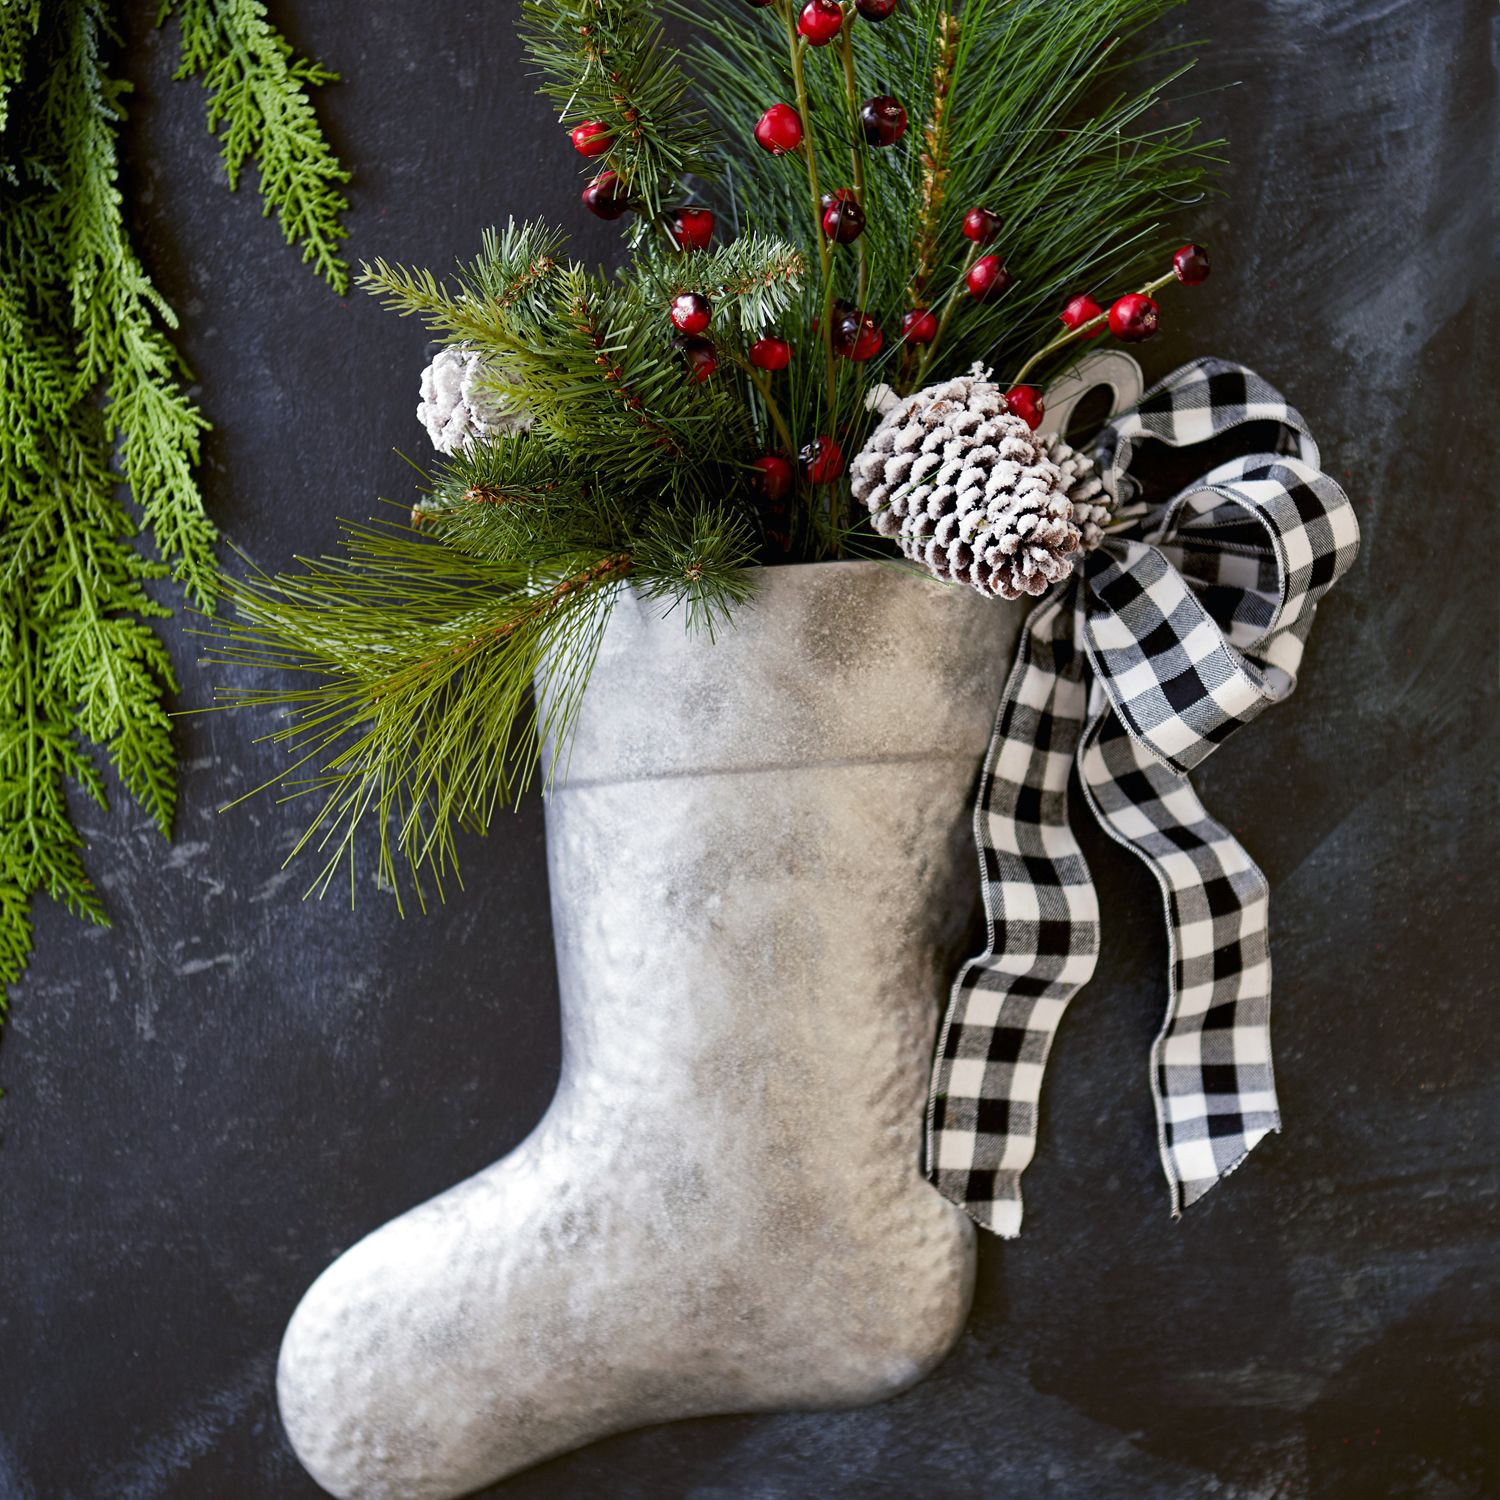 Modern Farmhouse Style DIY Christmas Door Decorations Galvanized Stocking Filled With Faux Greenery https://www.pier1.com/galvanized-stocking-%26-faux-greenery-door-hanger-%26-wreath-/3652349.html?cgid=wreaths-garlands#